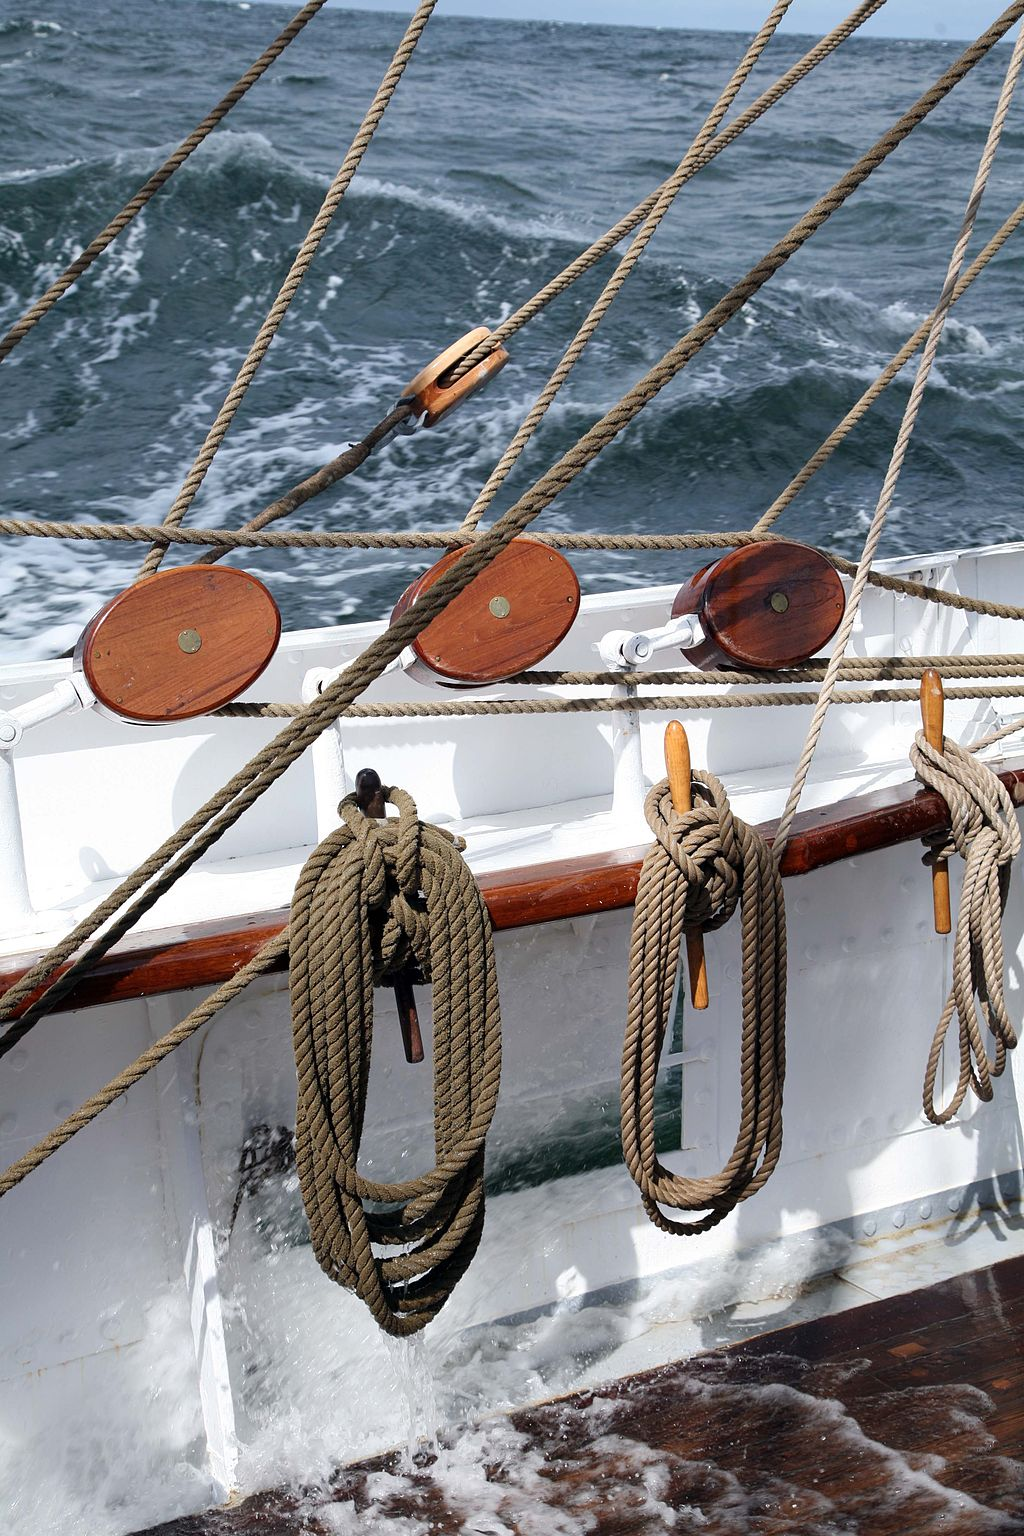 Belaying pins are still used today on sailing ships. Pirates!